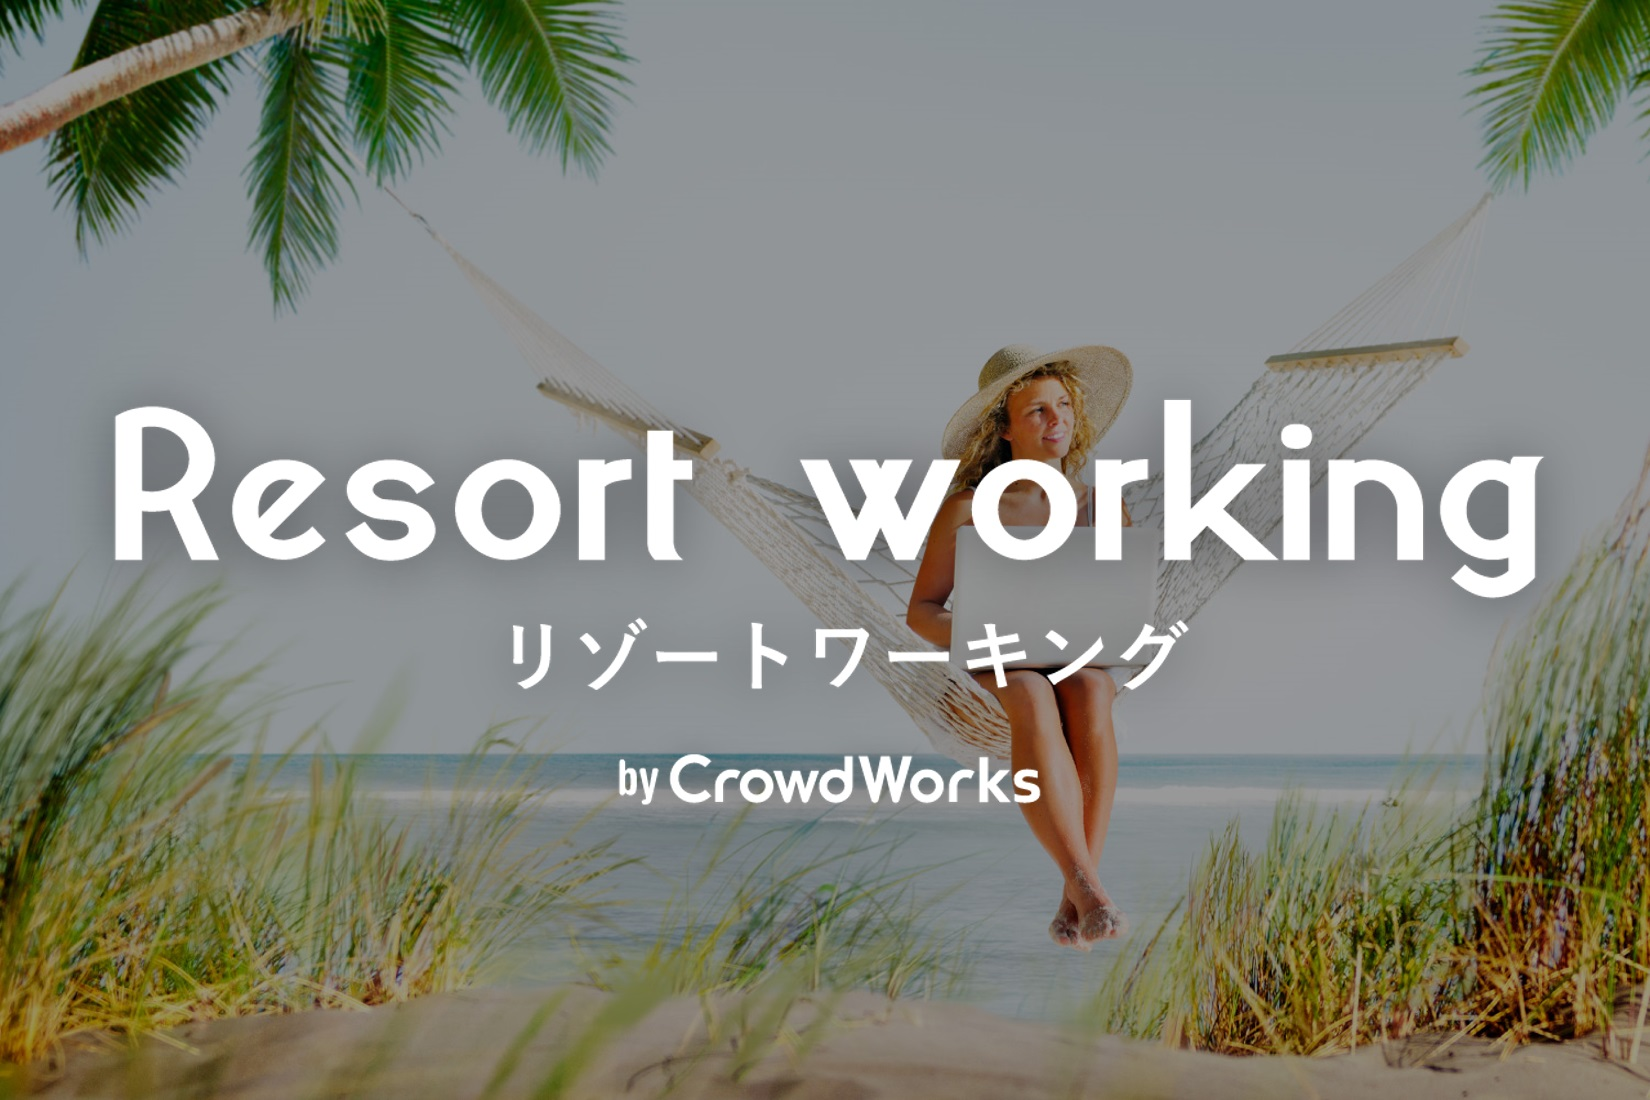 resortworking_bannar